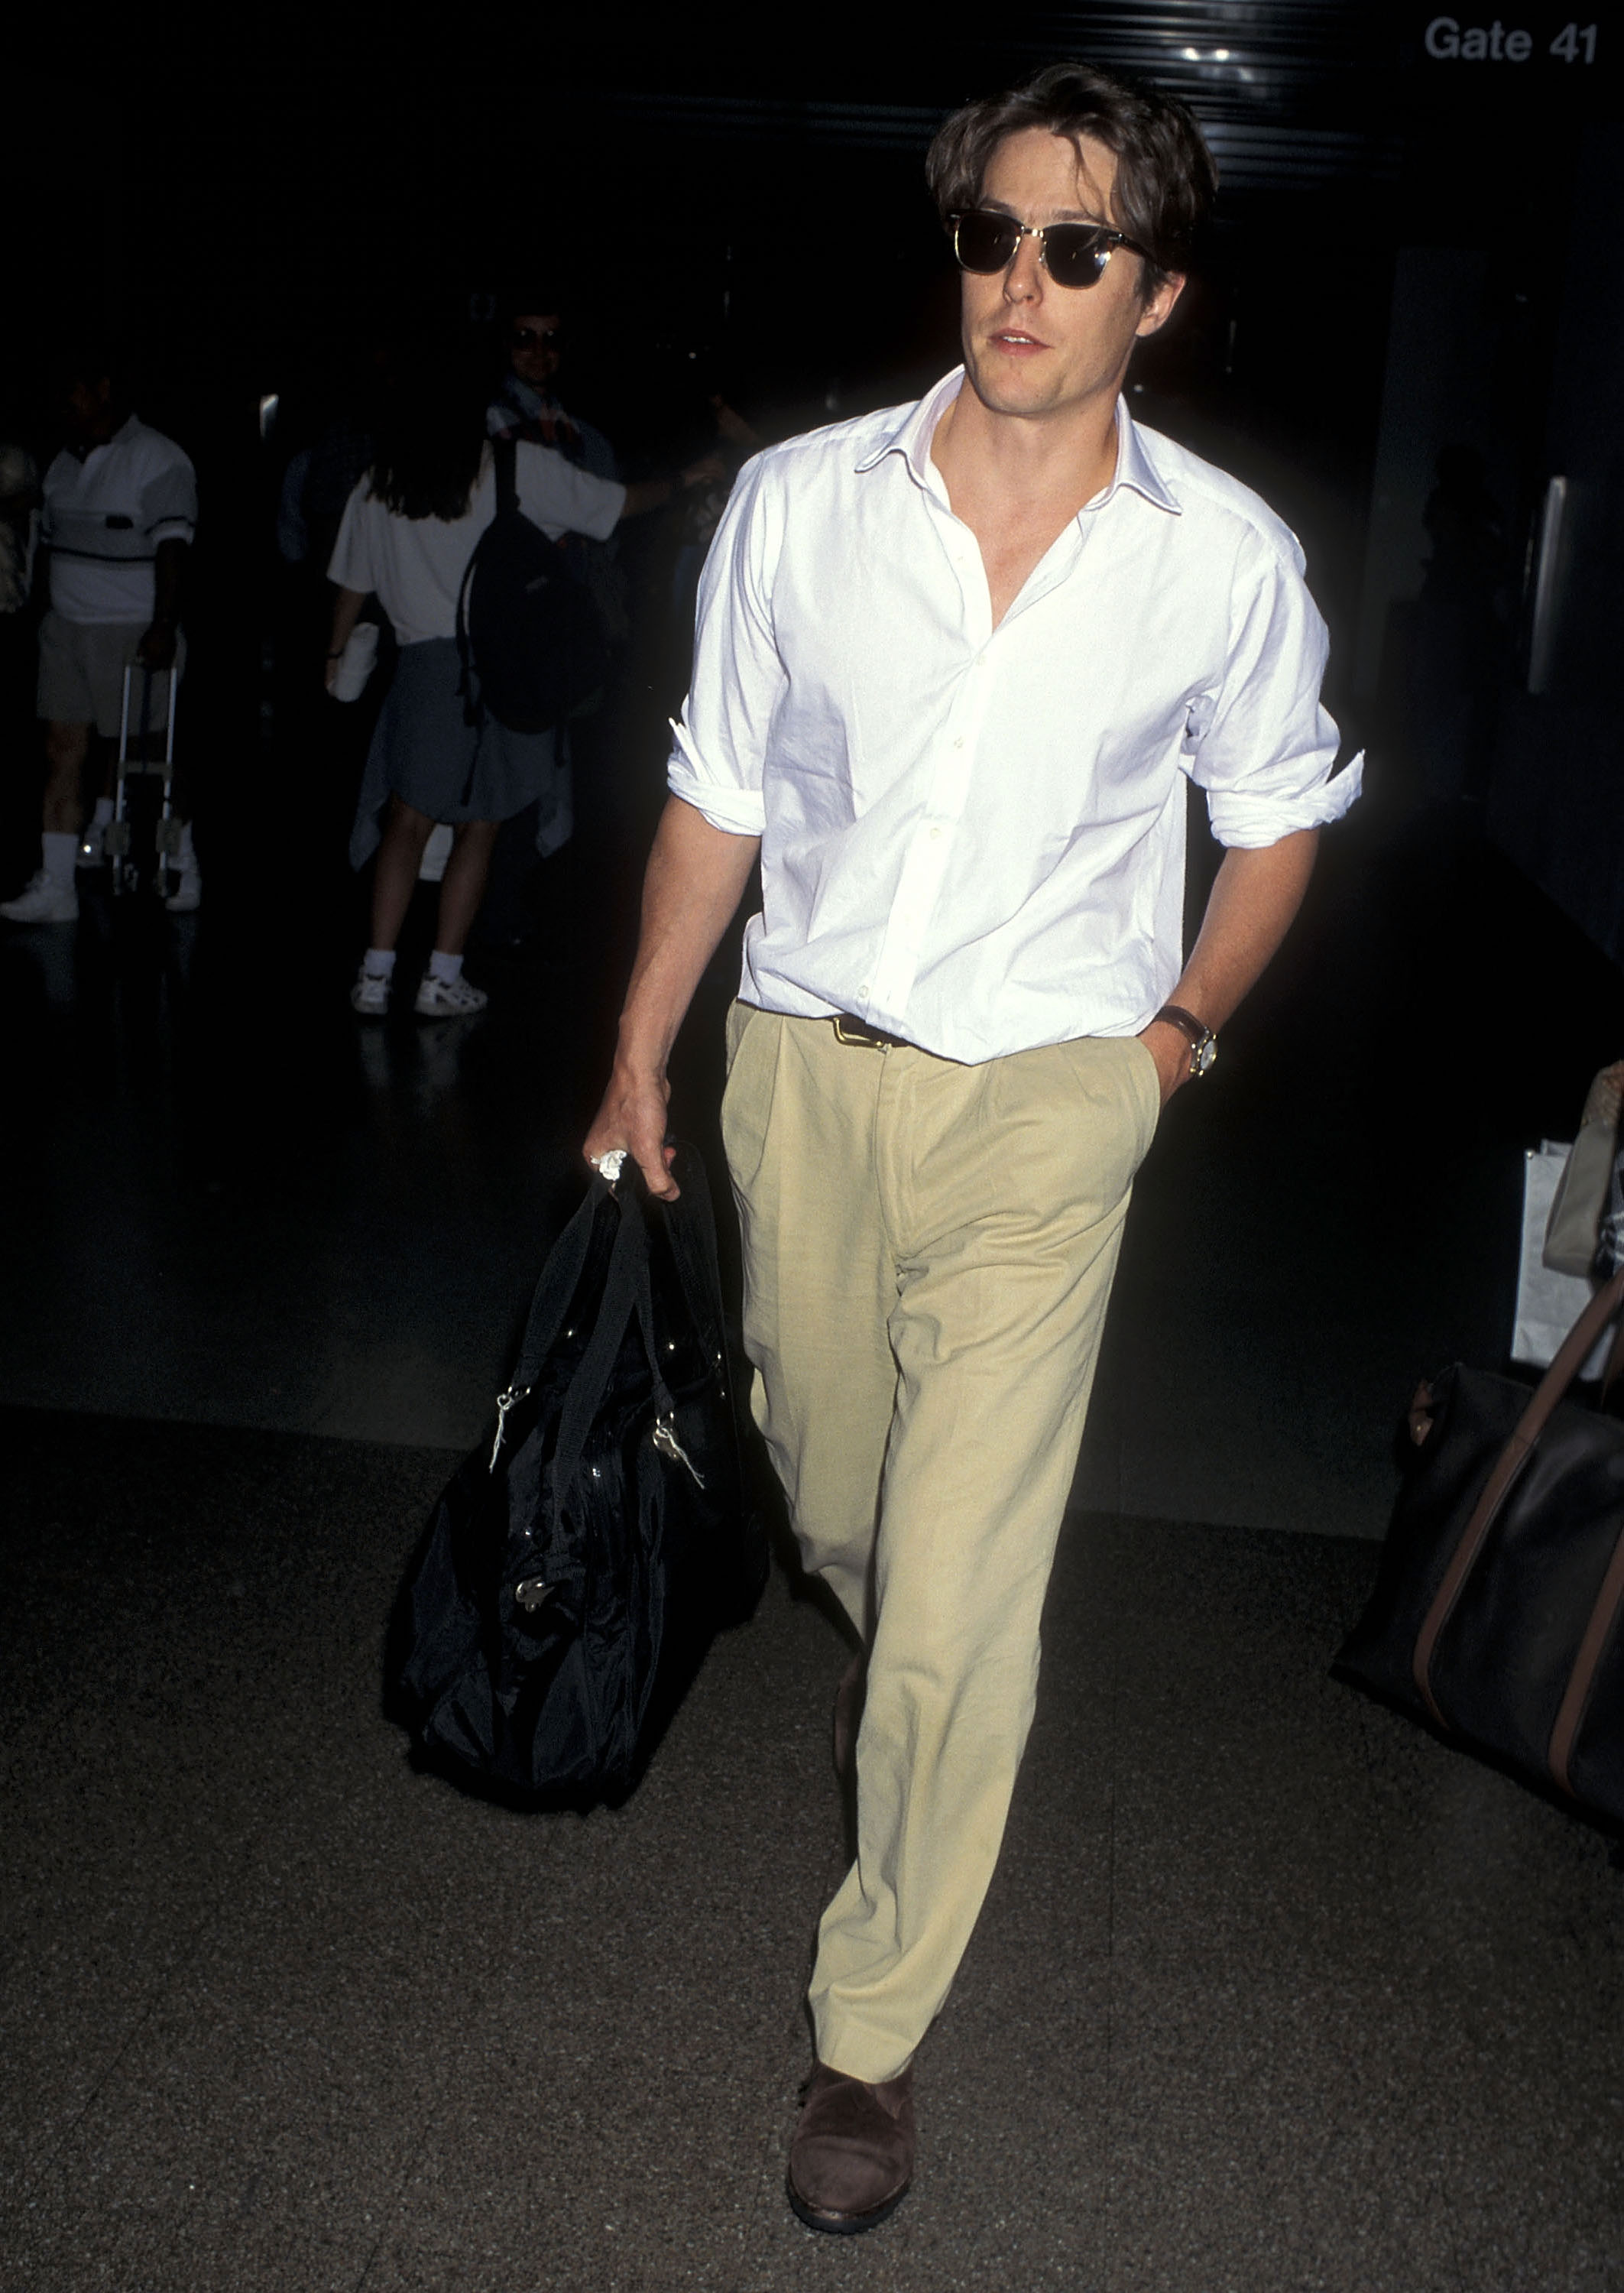 LOS ANGELES - JULY 20: Actor Hugh Grant arrives from New York City on July 20, 1995 at Los Angeles Internation Airport in Los Angeles, California. КРЕДИТ )